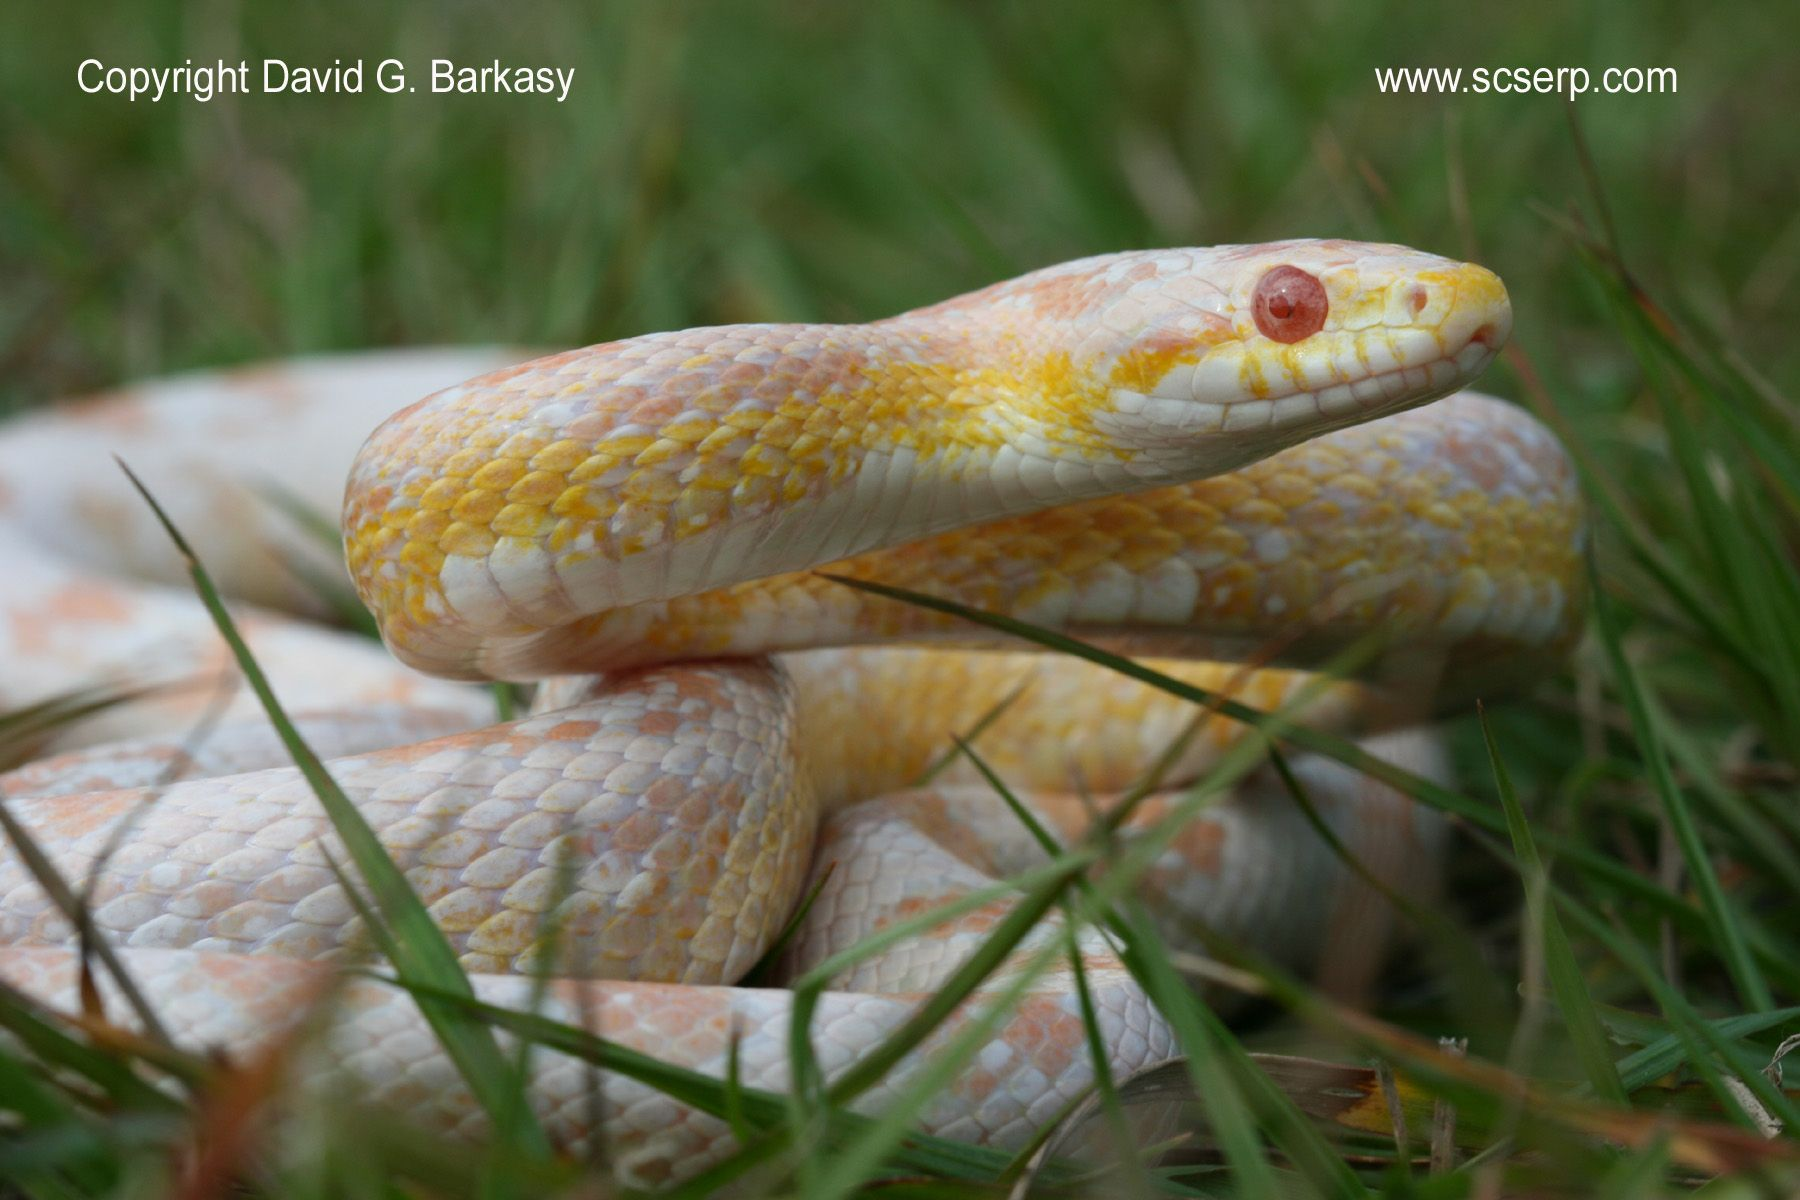 I Owned A Snow Corn Snake Once They Grow To Roughly 5 Feet They Eat Mice Fish Or Crickets And They Are Very Passive Snow Corns Have A Beautiful Skin Looks